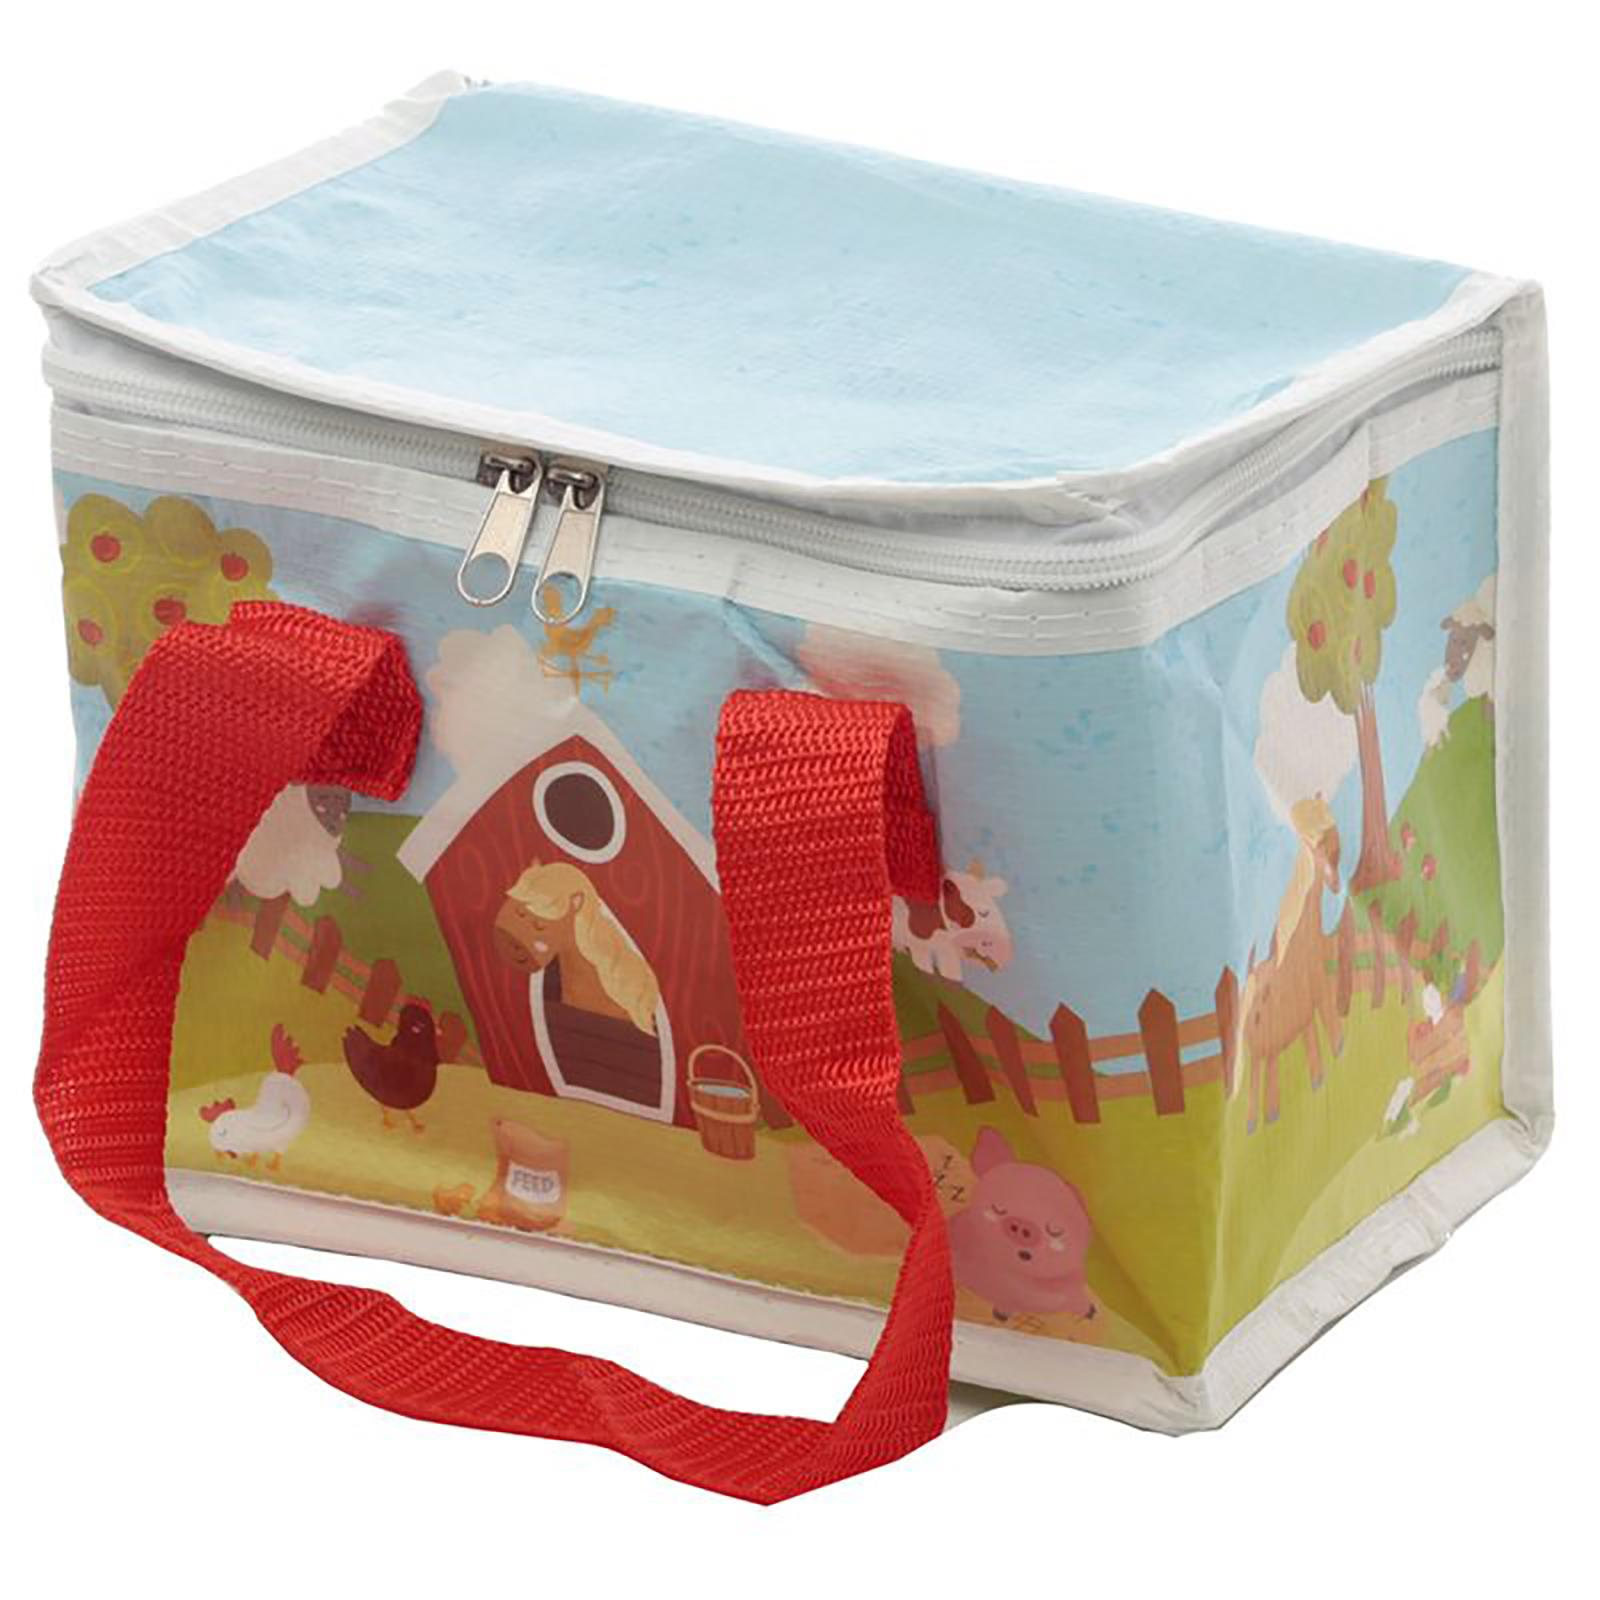 Cool-Bag-School-Picnic-Lunch-Box-Insulated-Small-Thermal-Cooler-Novelty-5-Litre miniatura 26